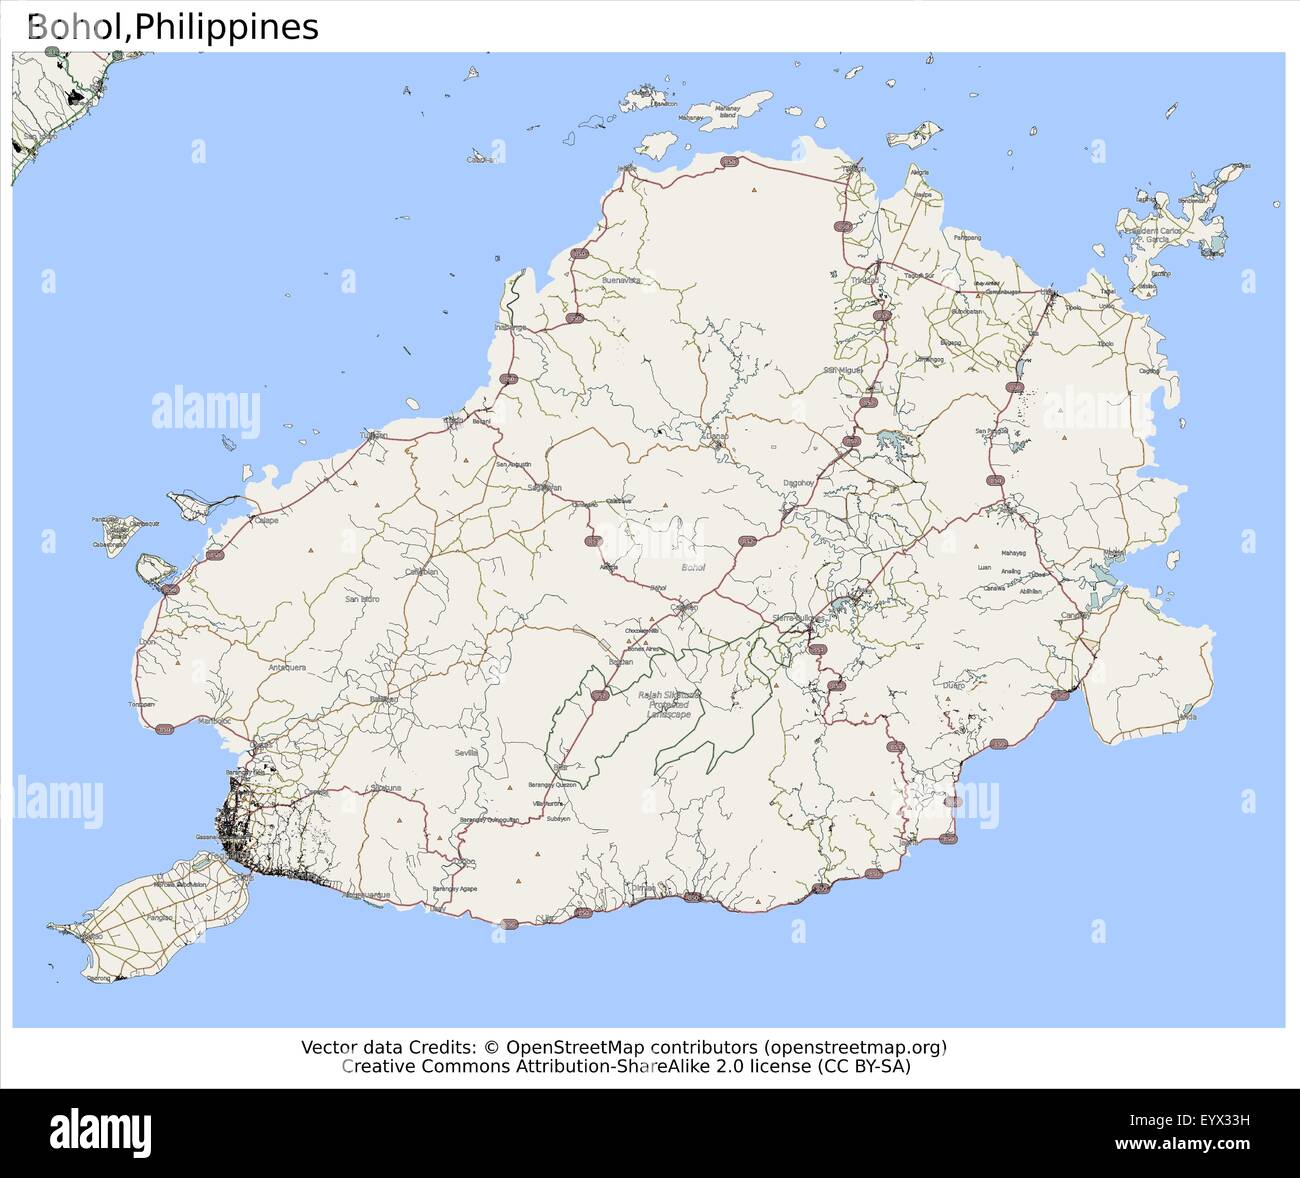 Bohol Philippines Country City Island State Location Map Stock